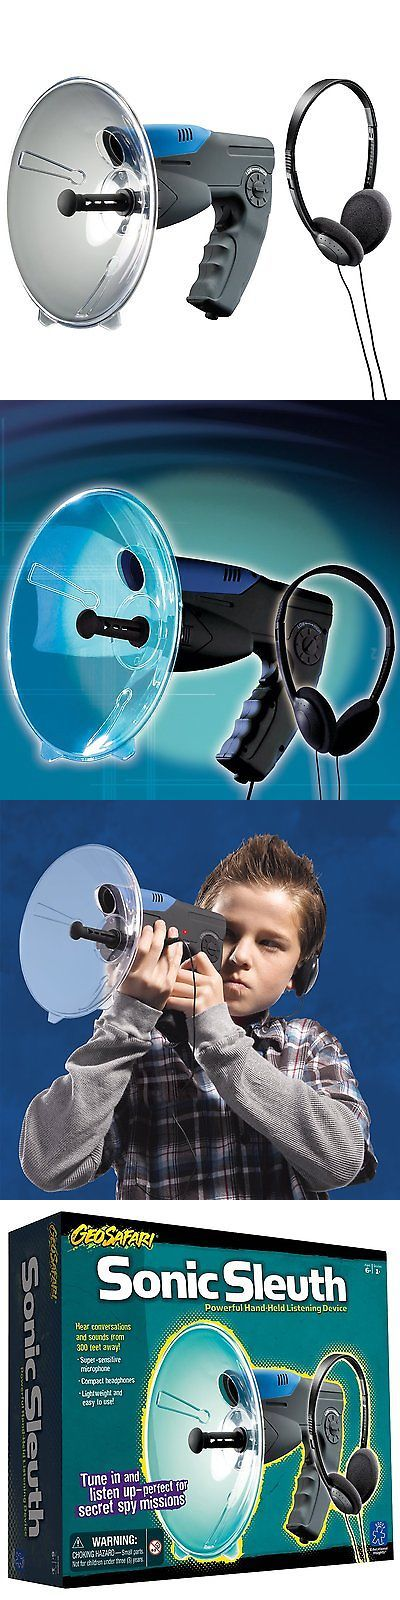 Surveillance Gadgets: Parabolic Microphone Spy Listening Device Bionic Ear Sound Amplifier Gadget 300M BUY IT NOW ONLY: $129.68